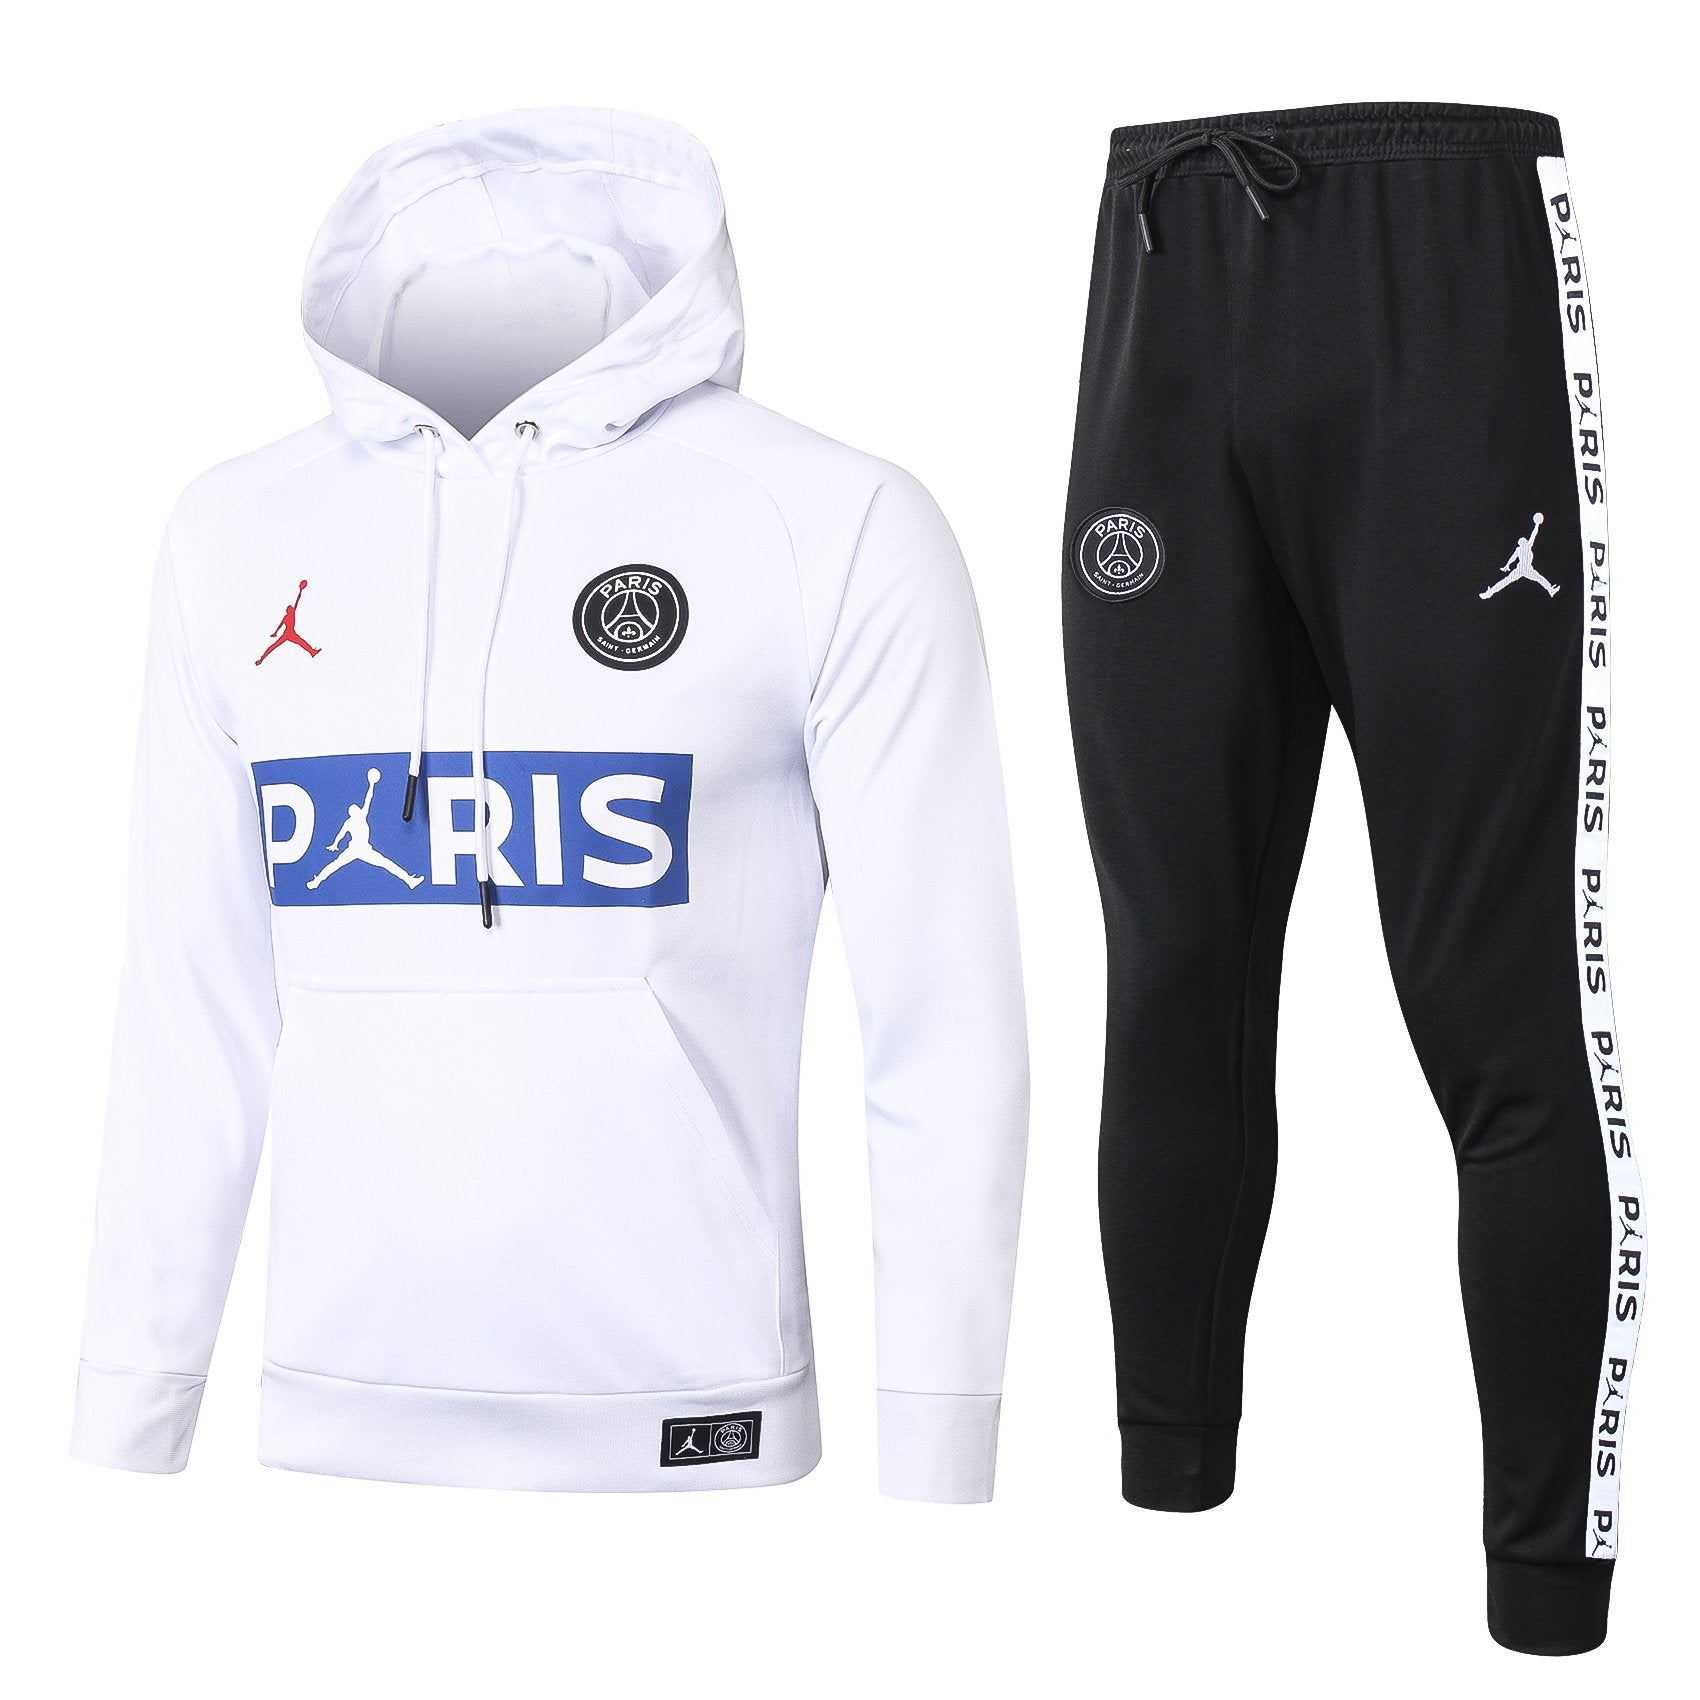 Sweat à Capuche + Bas de Survetement Blanc/Rouge PSG x JORDAN 2021 HOMME freeshipping - Foot Online